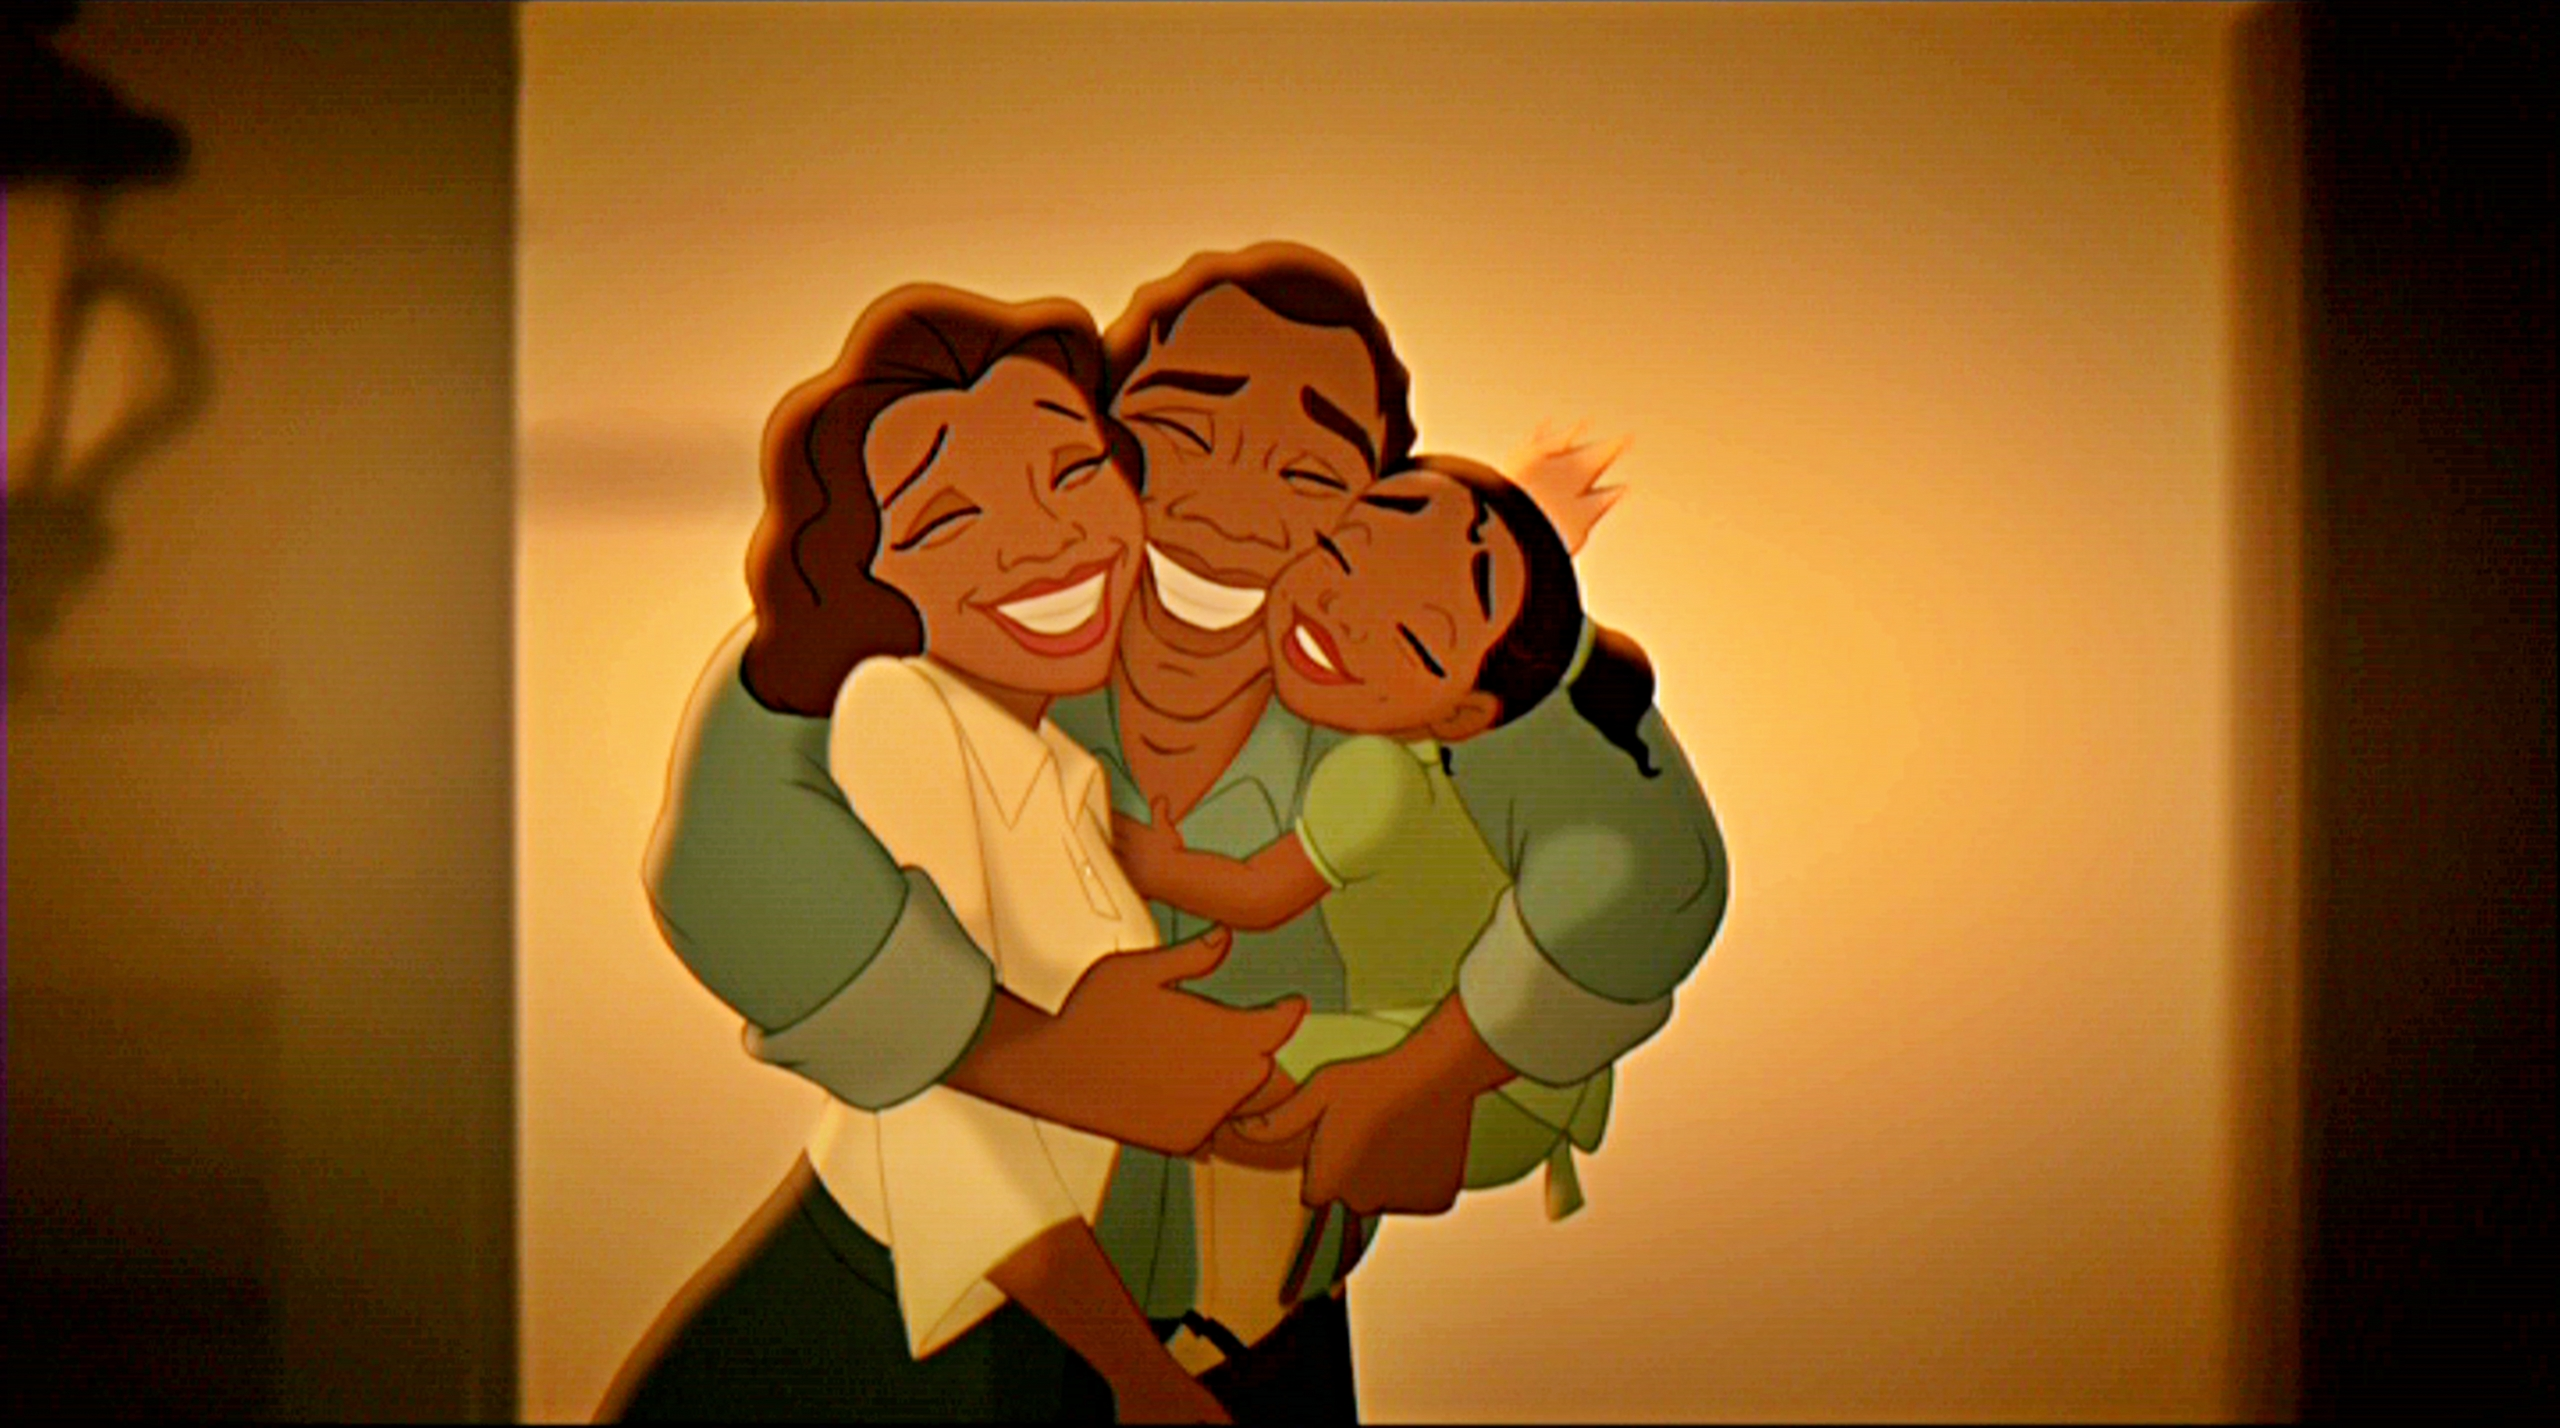 Disney Mothers Images Disney Parents And Couples Hd Wallpaper And